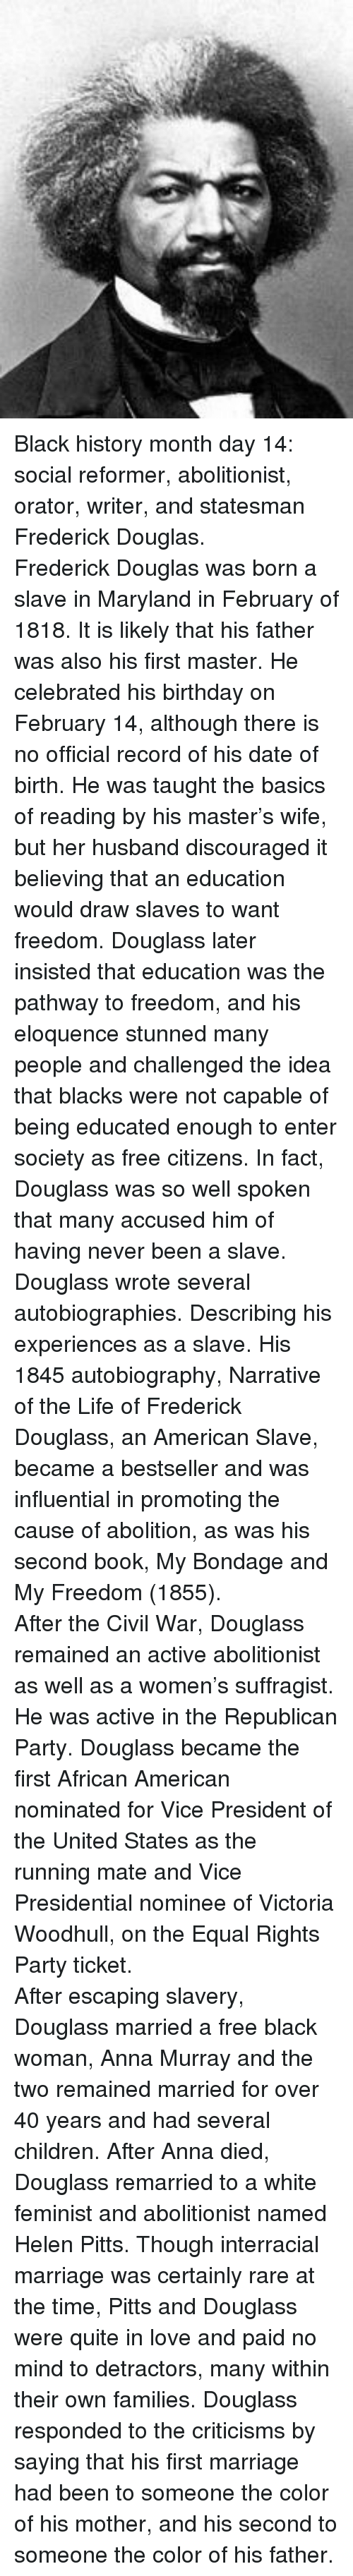 Anna, Birthday, and Black History Month: <p>Black history month day 14: social reformer, abolitionist, orator, writer, and statesman Frederick Douglas.</p>  <p>Frederick Douglas was born a slave in Maryland in February of 1818. It is likely that his father was also his first master. He celebrated his birthday on February 14, although there is no official record of his date of birth. He was taught the basics of reading by his master&rsquo;s wife, but her husband discouraged it believing that an education would draw slaves to want freedom. Douglass later insisted that education was the pathway to freedom, and his eloquence stunned many people and challenged the idea that blacks were not capable of being educated enough to enter society as free citizens. In fact, Douglass was so well spoken that many accused him of having never been a slave.</p>  <p>Douglass wrote several autobiographies. Describing his experiences as a slave. His 1845 autobiography, Narrative of the Life of Frederick Douglass, an American Slave, became a bestseller and was influential in promoting the cause of abolition, as was his second book, My Bondage and My Freedom (1855). </p>  <p>After the Civil War, Douglass remained an active abolitionist as well as a women&rsquo;s suffragist. He was active in the Republican Party. Douglass became the first African American nominated for Vice President of the United States as the running mate and Vice Presidential nominee of Victoria Woodhull, on the Equal Rights Party ticket. </p>  <p>After escaping slavery, Douglass married a free black woman, Anna Murray and the two remained married for over 40 years and had several children. After Anna died, Douglass remarried to a white feminist and abolitionist named Helen Pitts. Though interracial marriage was certainly rare at the time, Pitts and Douglass were quite in love and paid no mind to detractors, many within their own families. Douglass responded to the criticisms by saying that his first marriage had been to someone the color of his mother, and his second to someone the color of his father.</p>